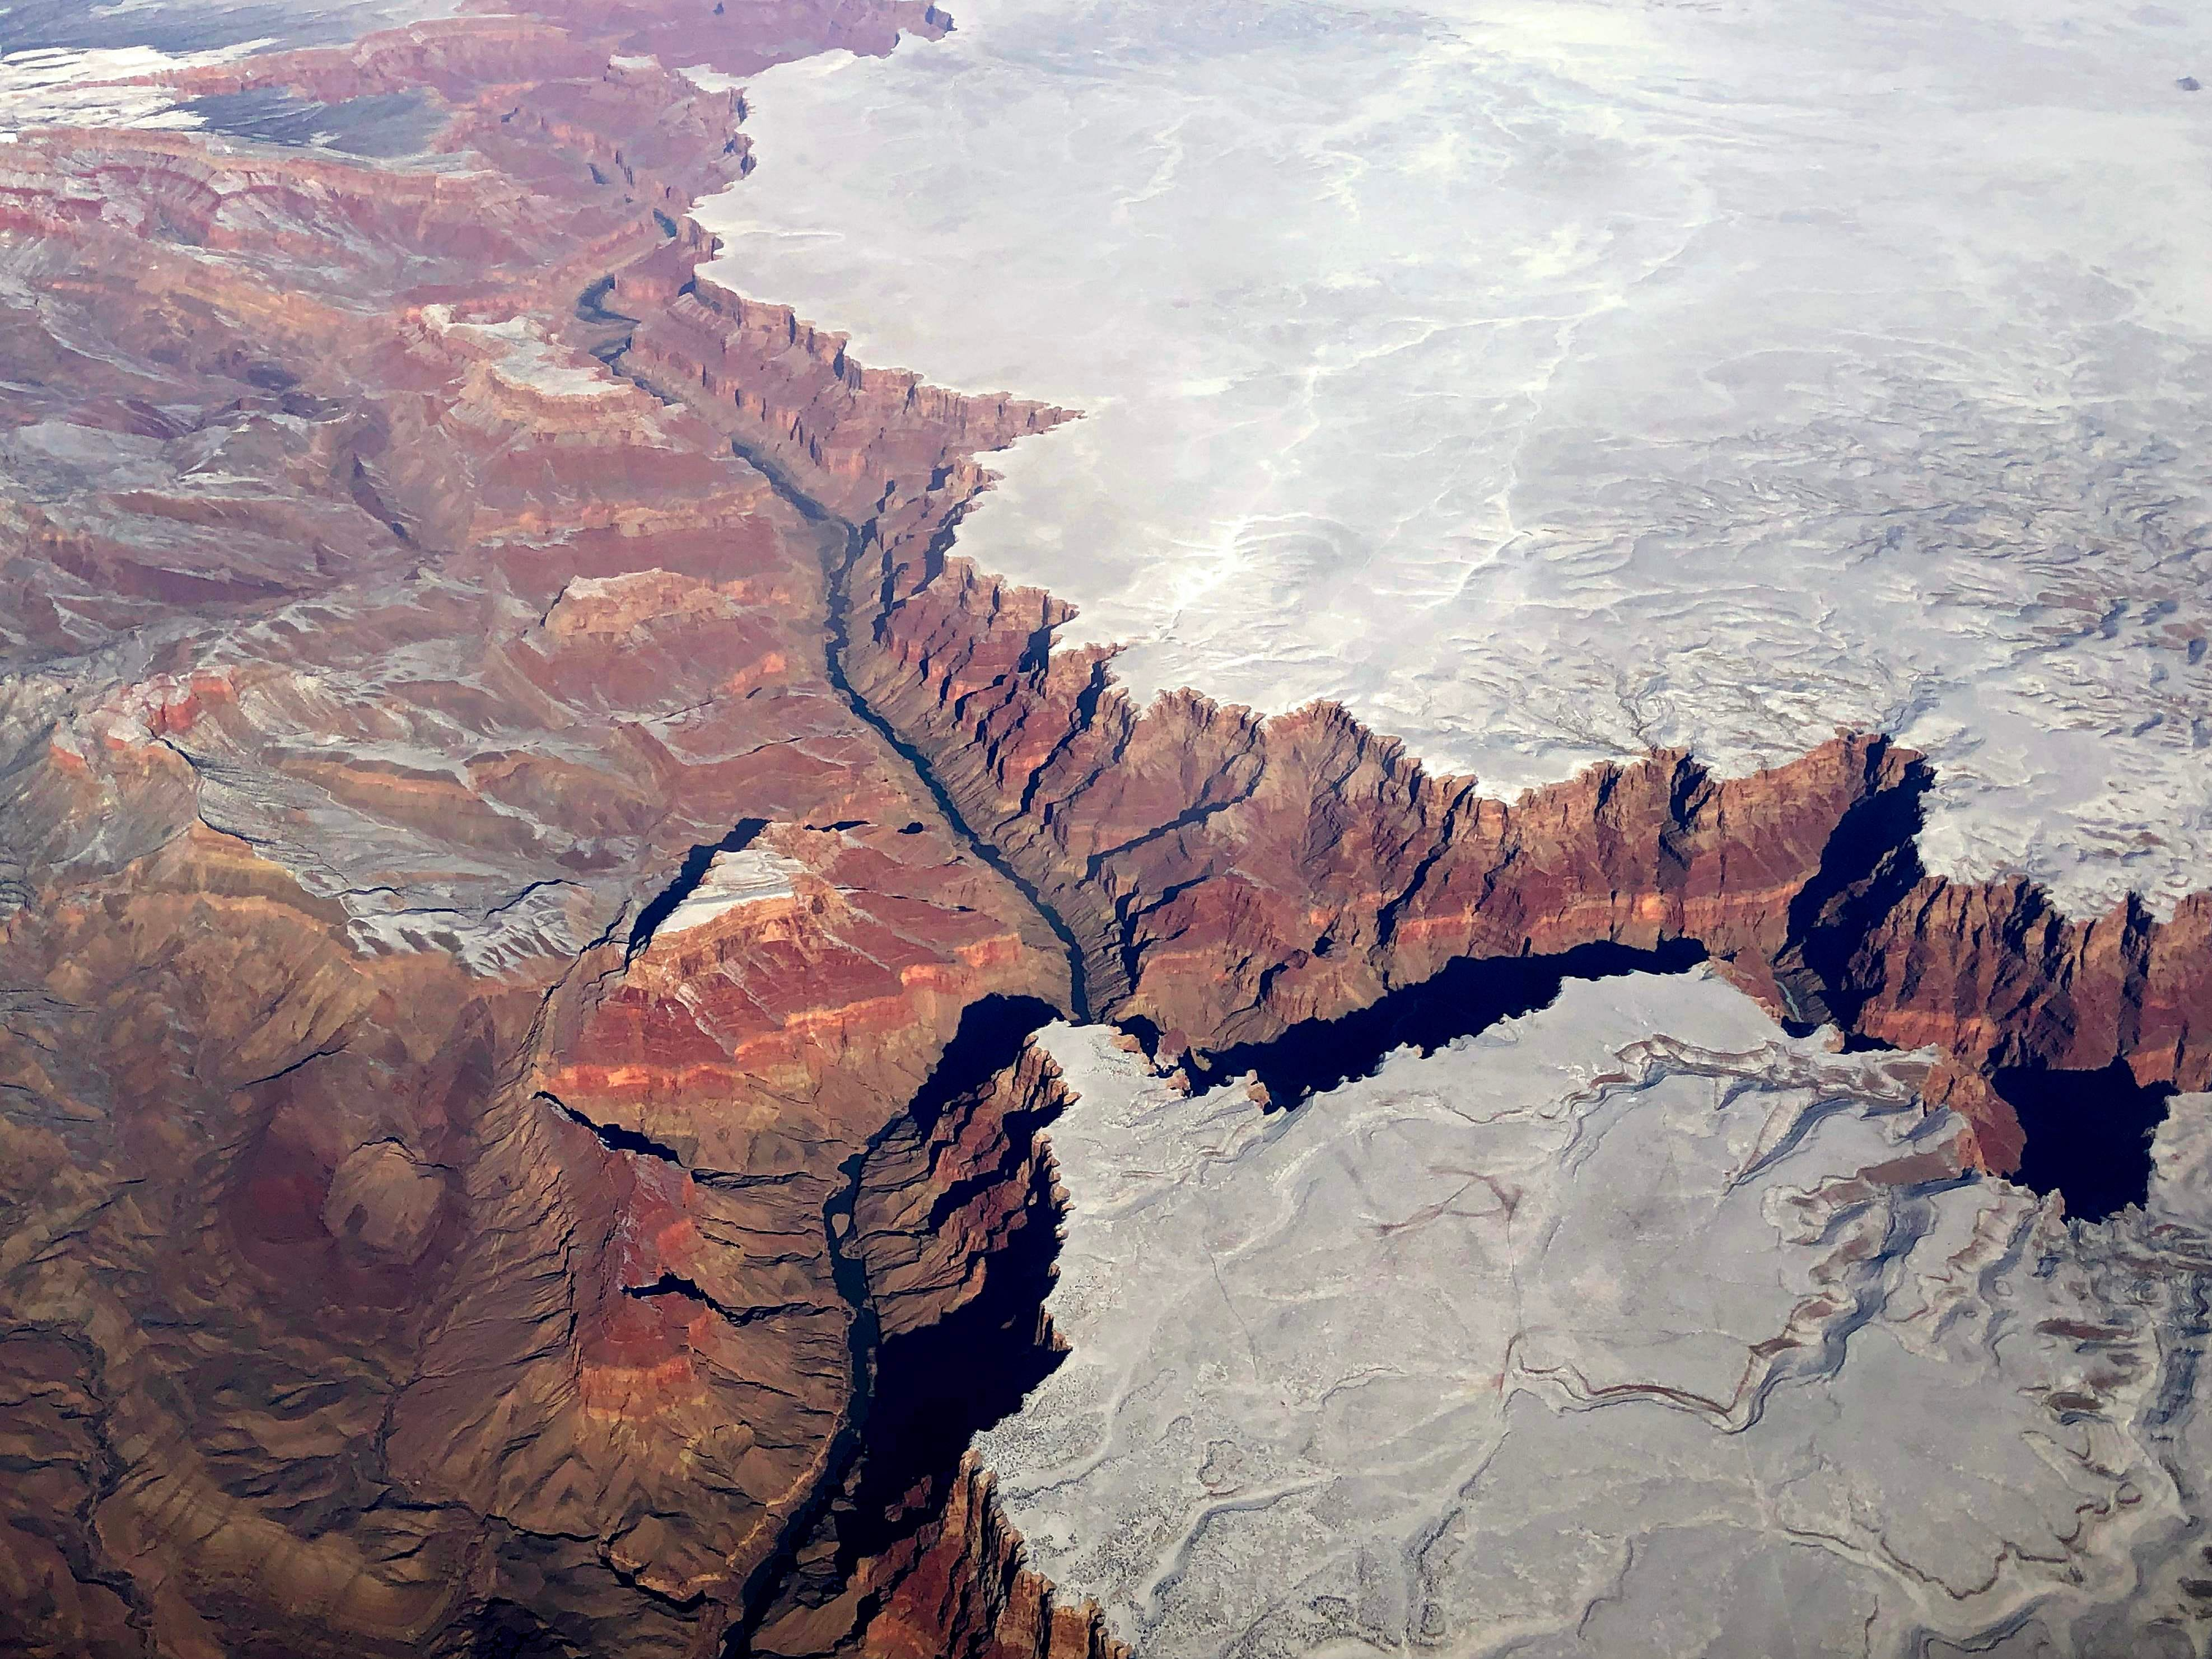 An aerial picture taken on Jan. 3, 2019, shows the Grand Canyon covered with snow in AZ.